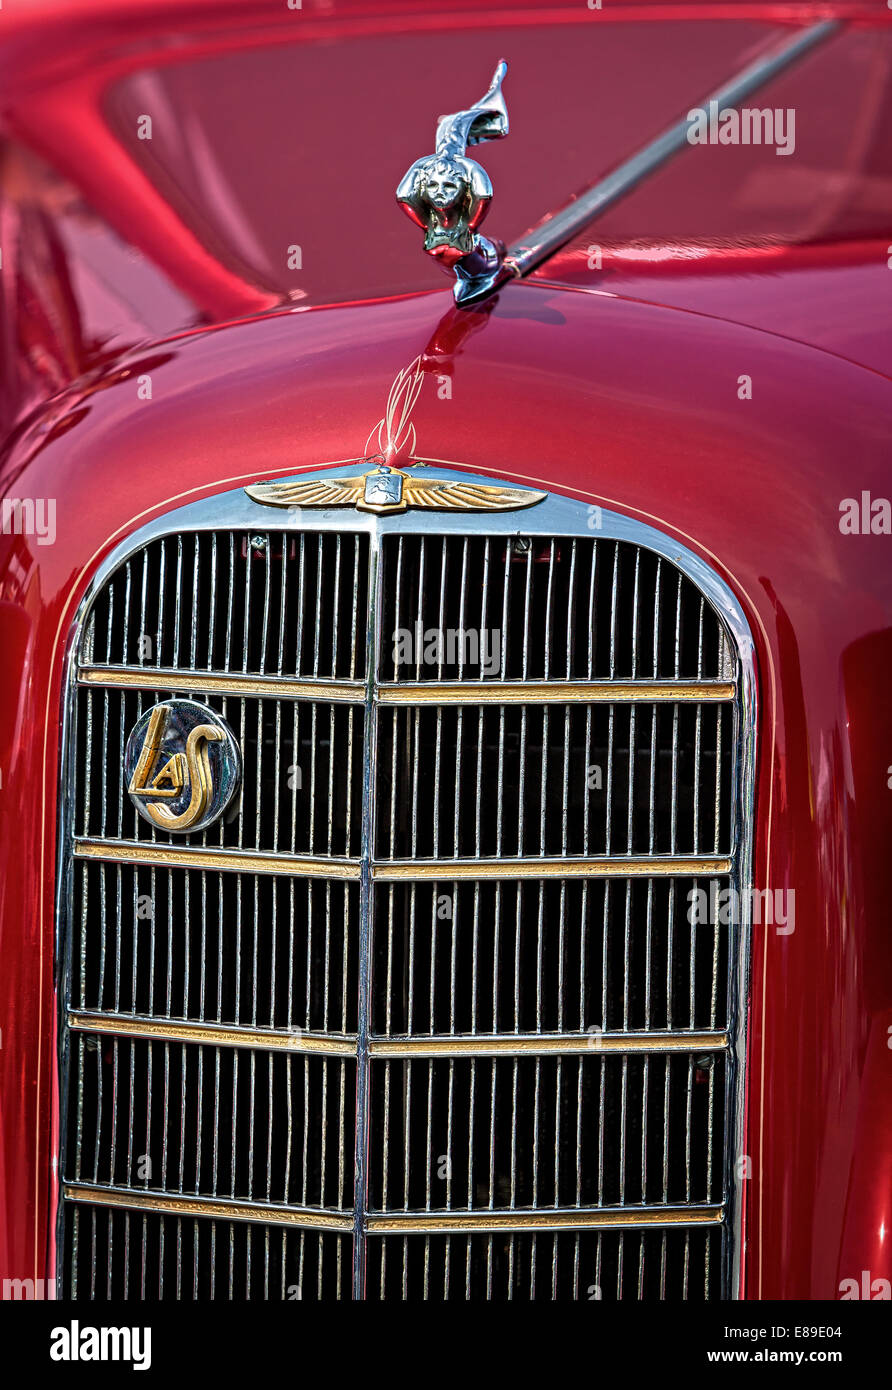 Detail view of hood, grill logo emblem and ornament of a General Motors LaSalle 1936 Classic Coupe - Stock Image